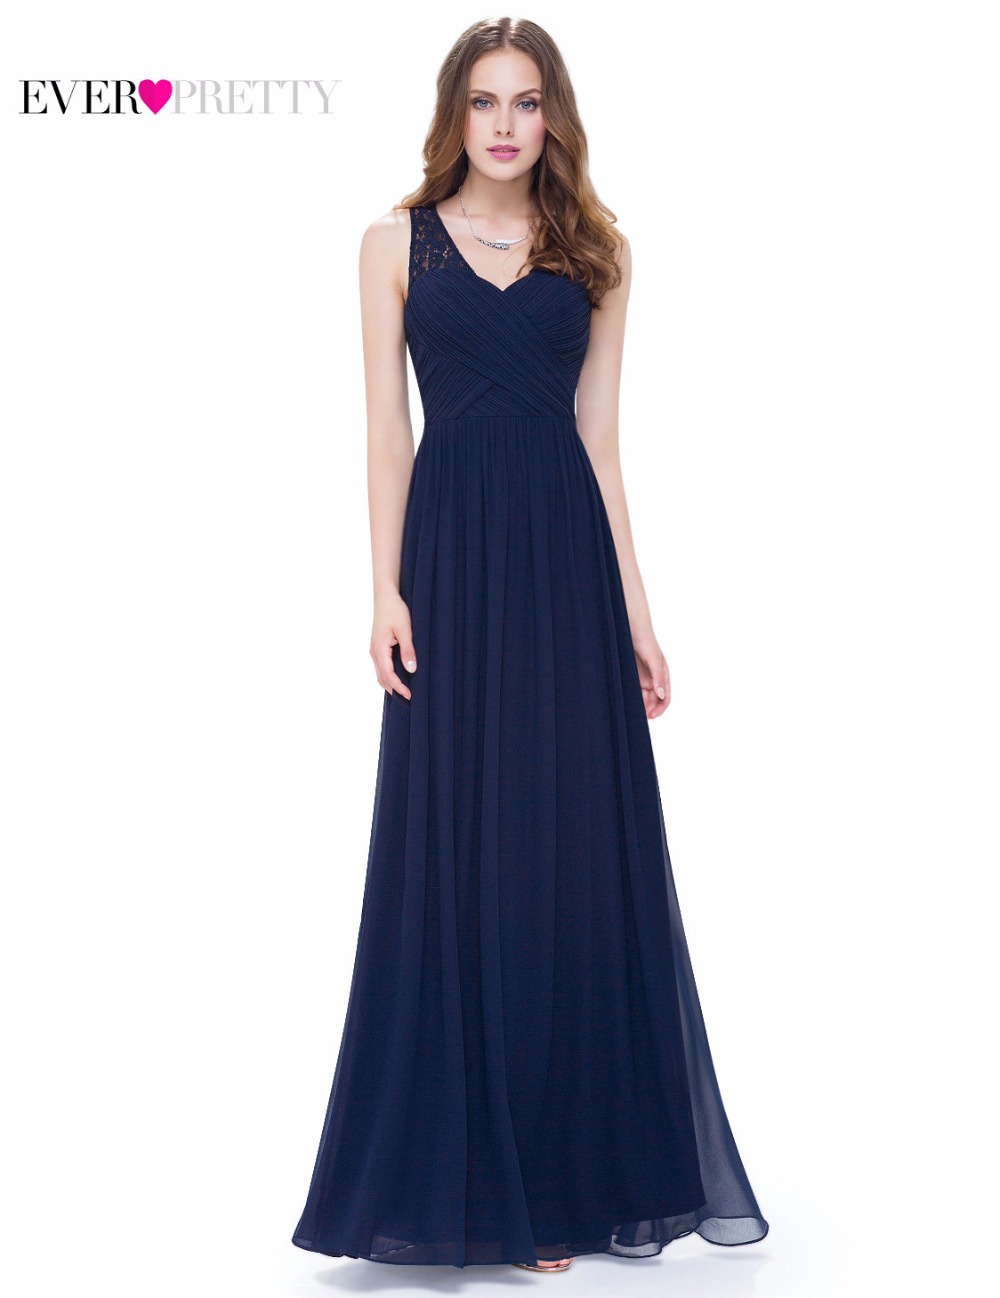 Compare Prices on Navy Party Dress- Online Shopping/Buy Low Price ...